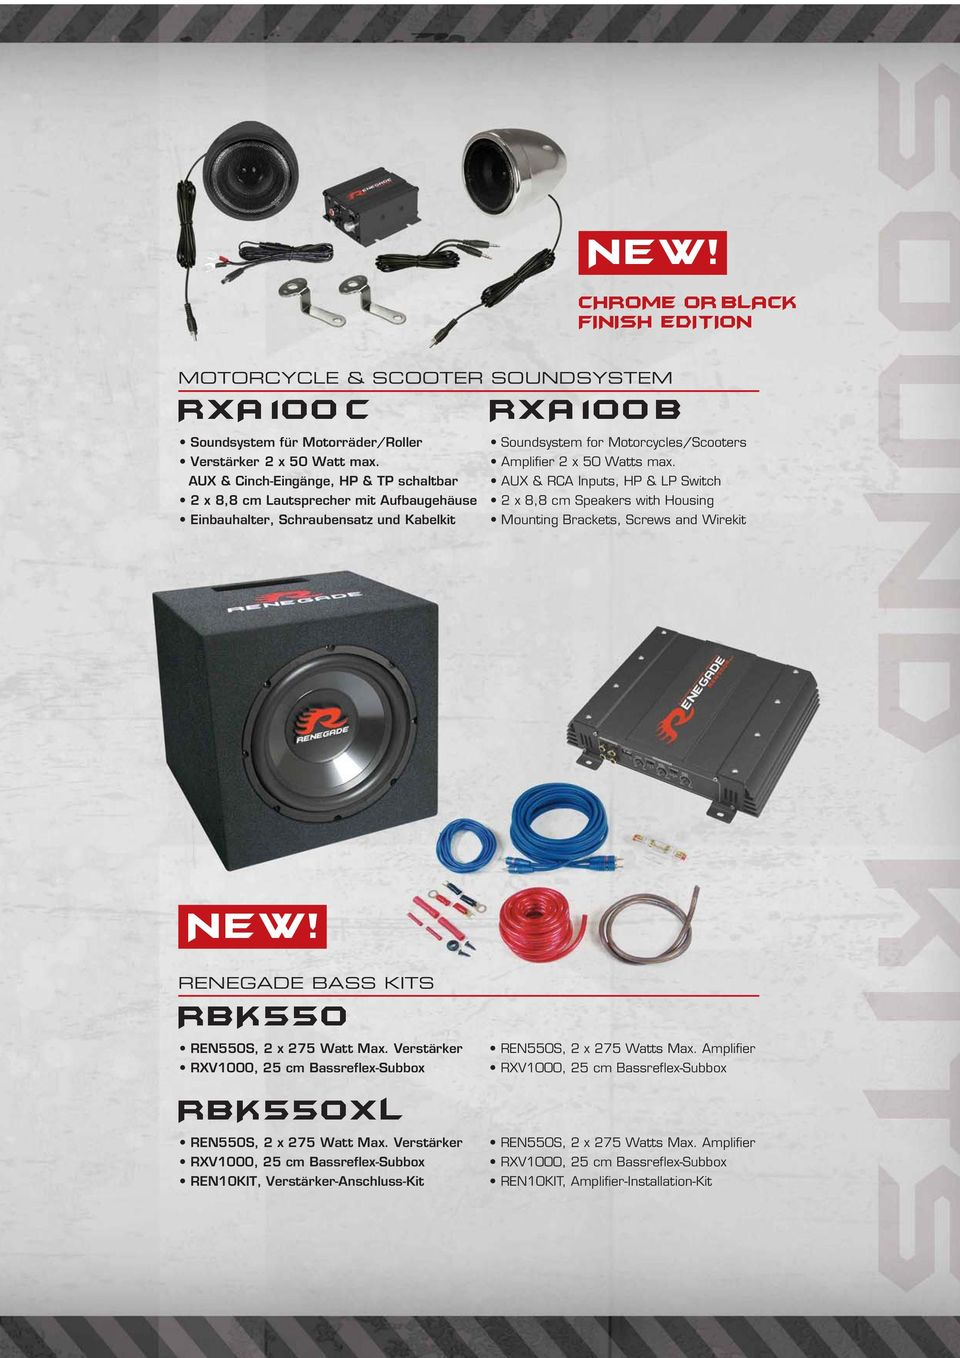 AUX & RCA Inputs, HP & LP Switch 2 x 8,8 cm Speakers with Housing Mounting Brackets, Screws and Wirekit NEW! RENEGADE BASS KITS RBK550 REN550S, 2 x 275 Watt Max.